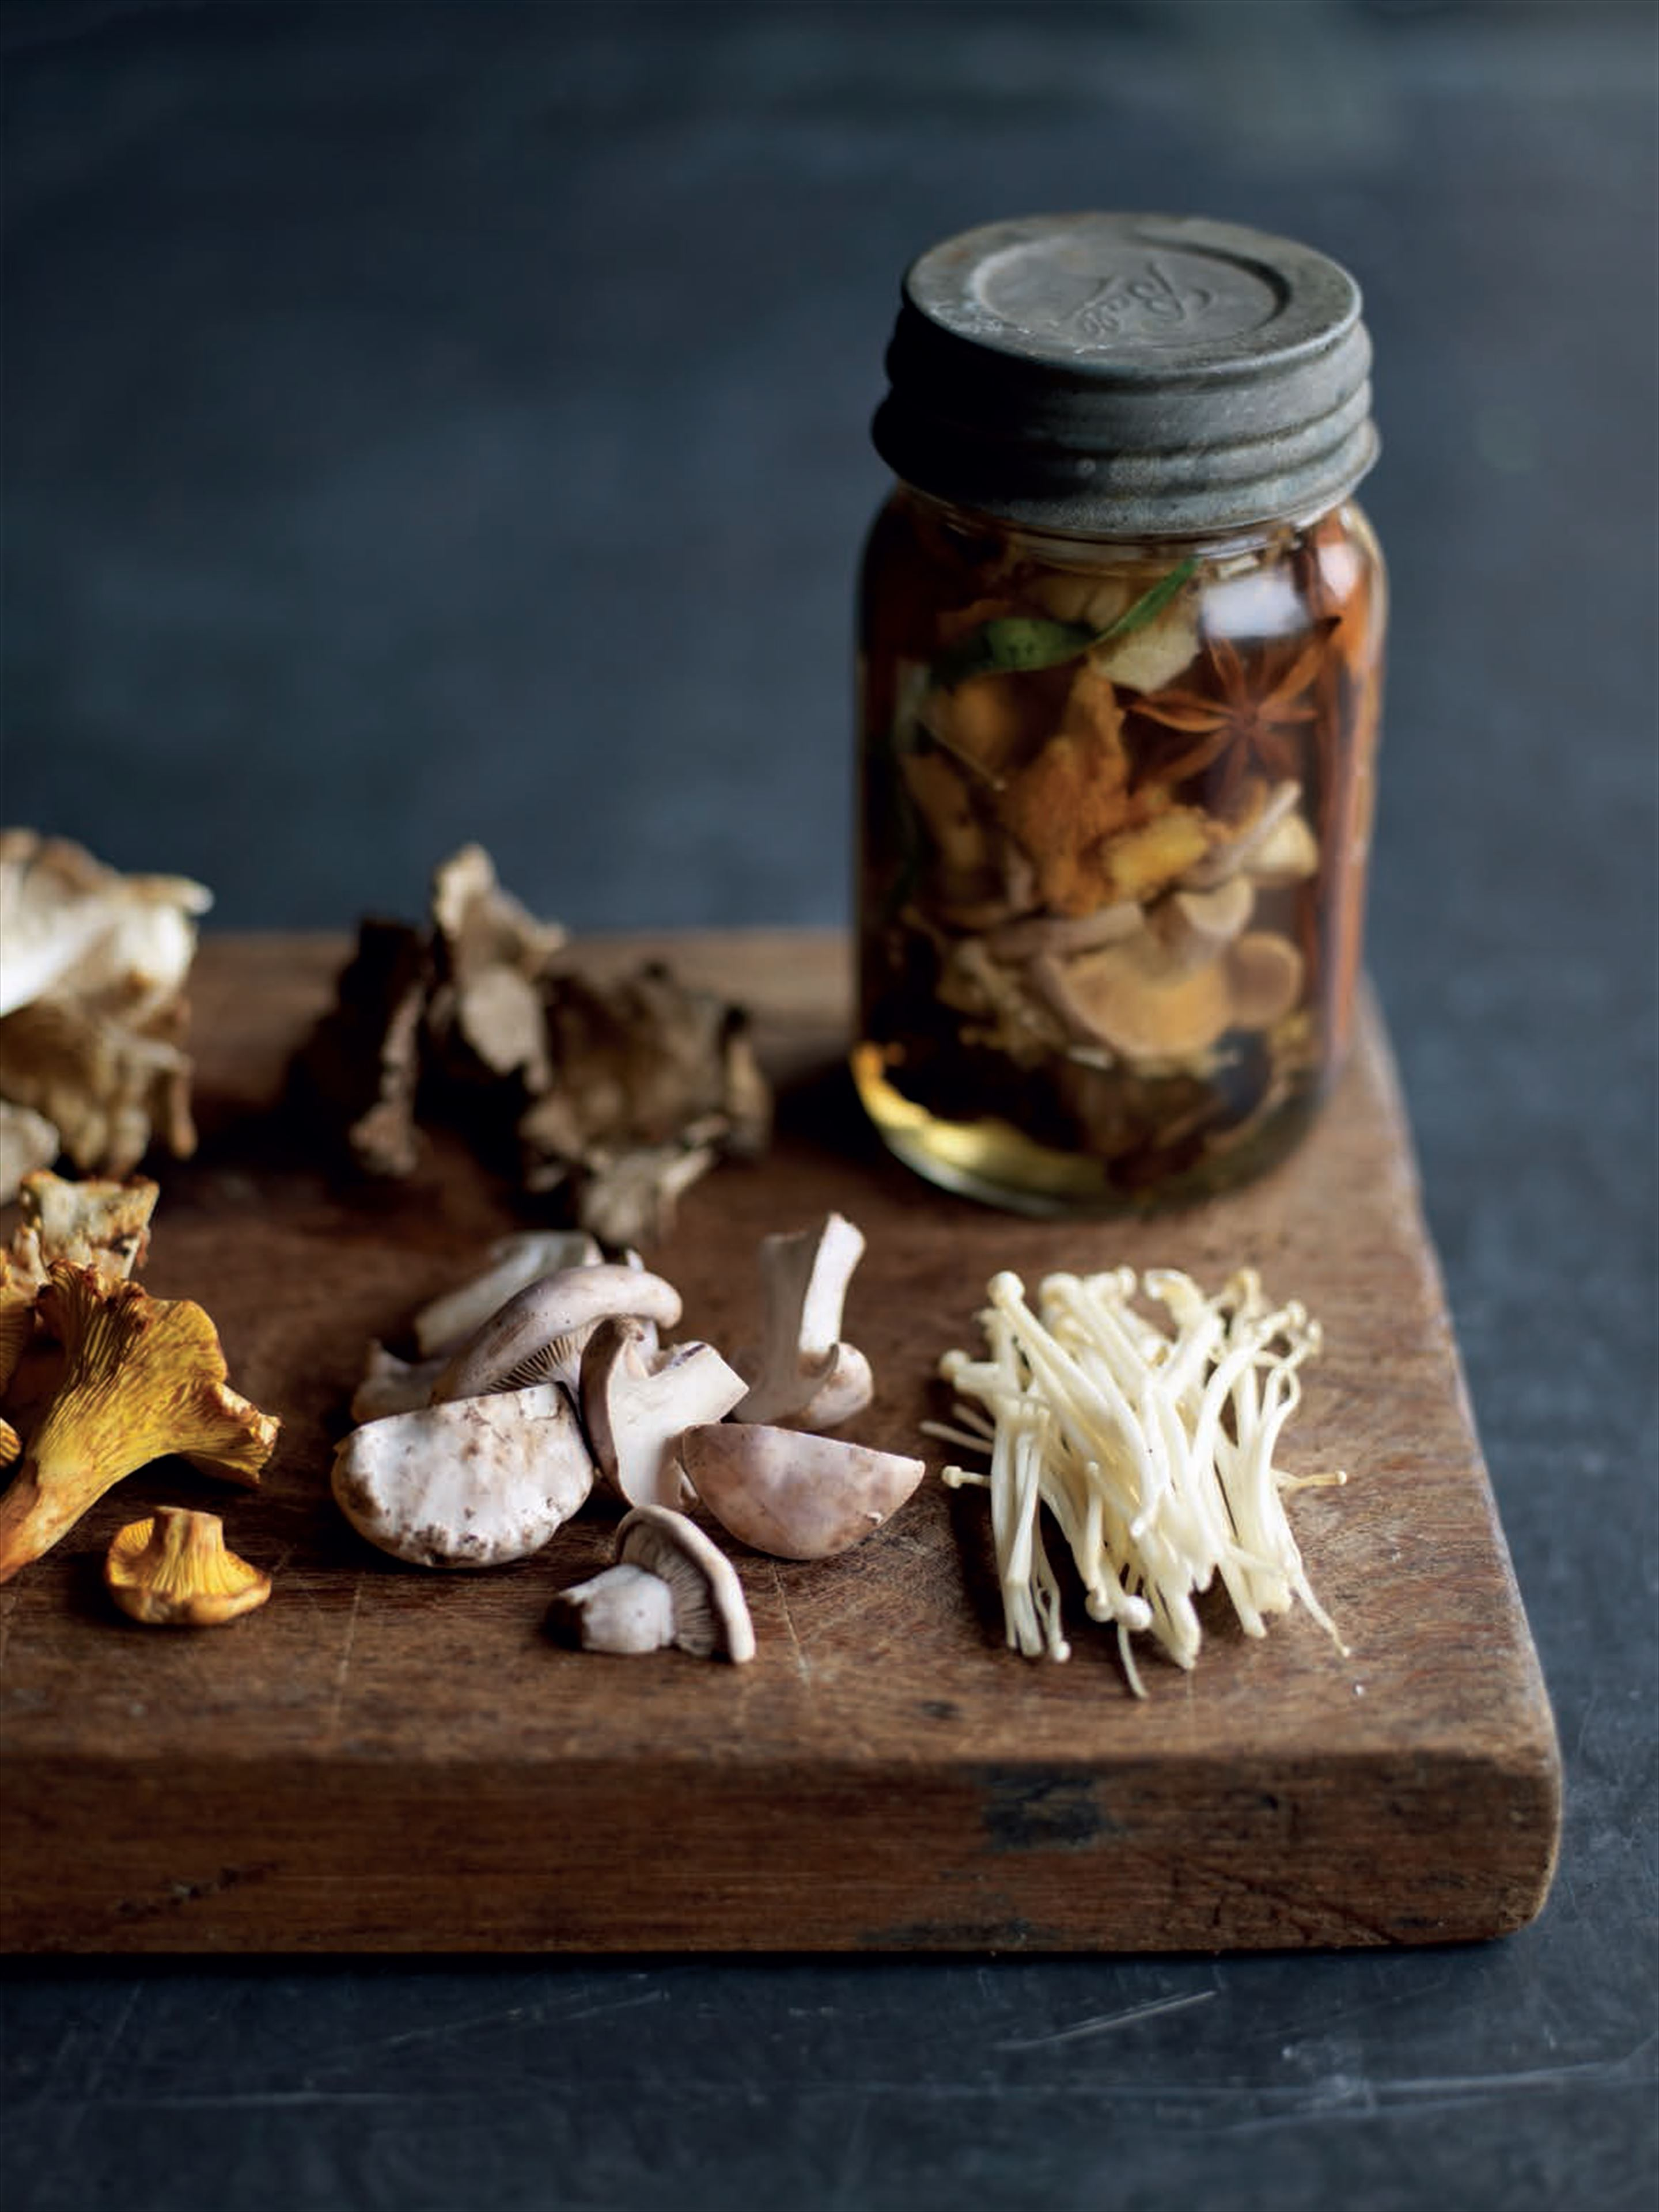 Pickled wild mushrooms